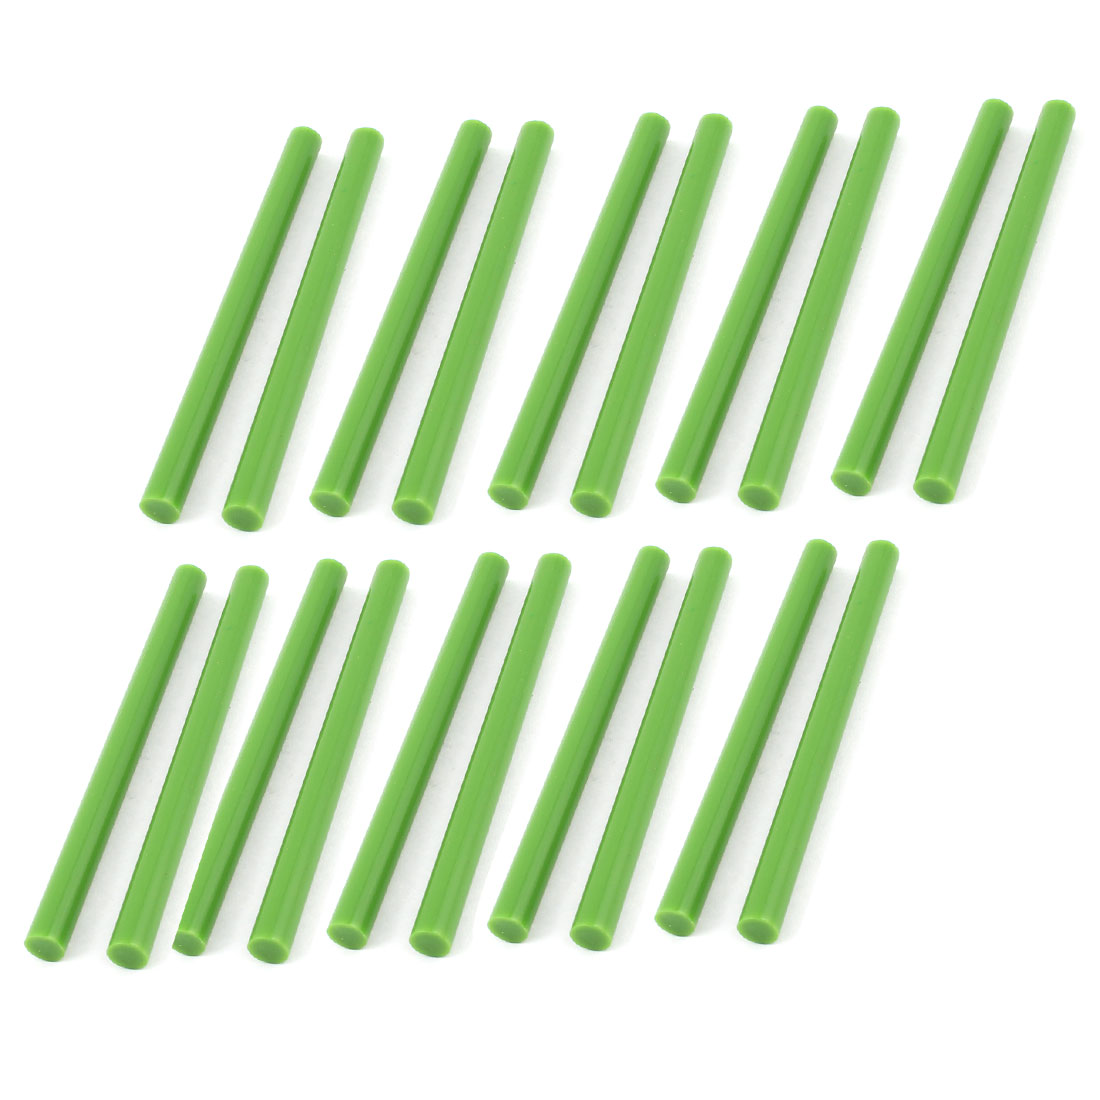 20 Pcs Green 7mm Dia Hot Melt Glue Adhesive Sticks for Electric Tool Heating Gun